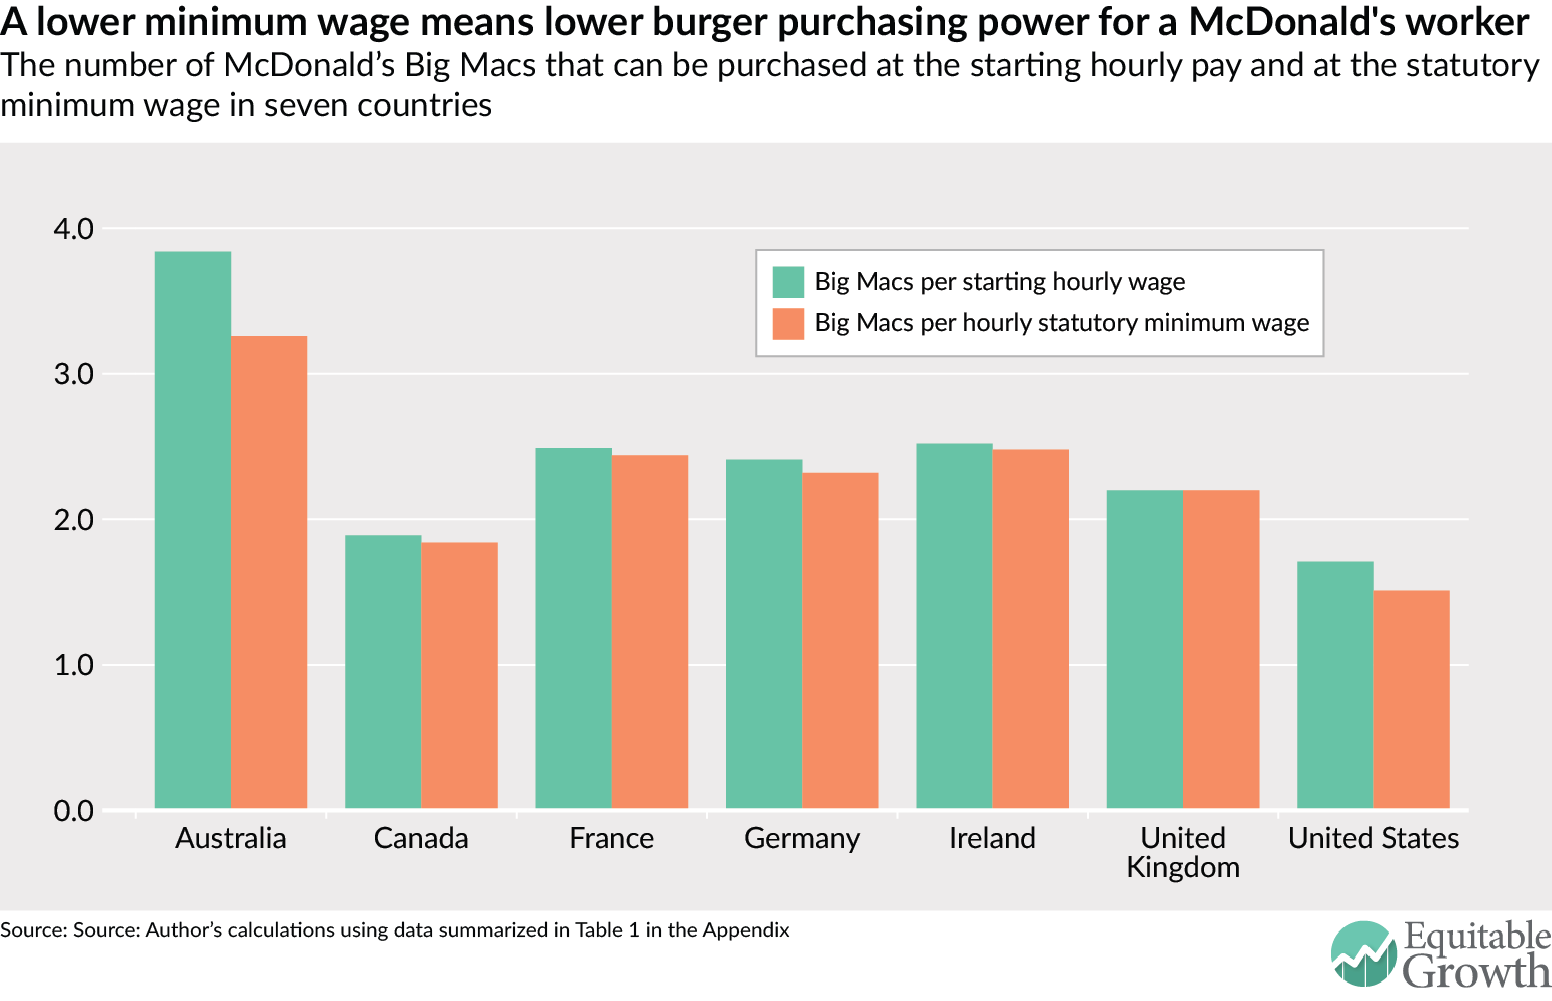 A lower minimum wage means lower burger purchasing power for a McDonald's worker